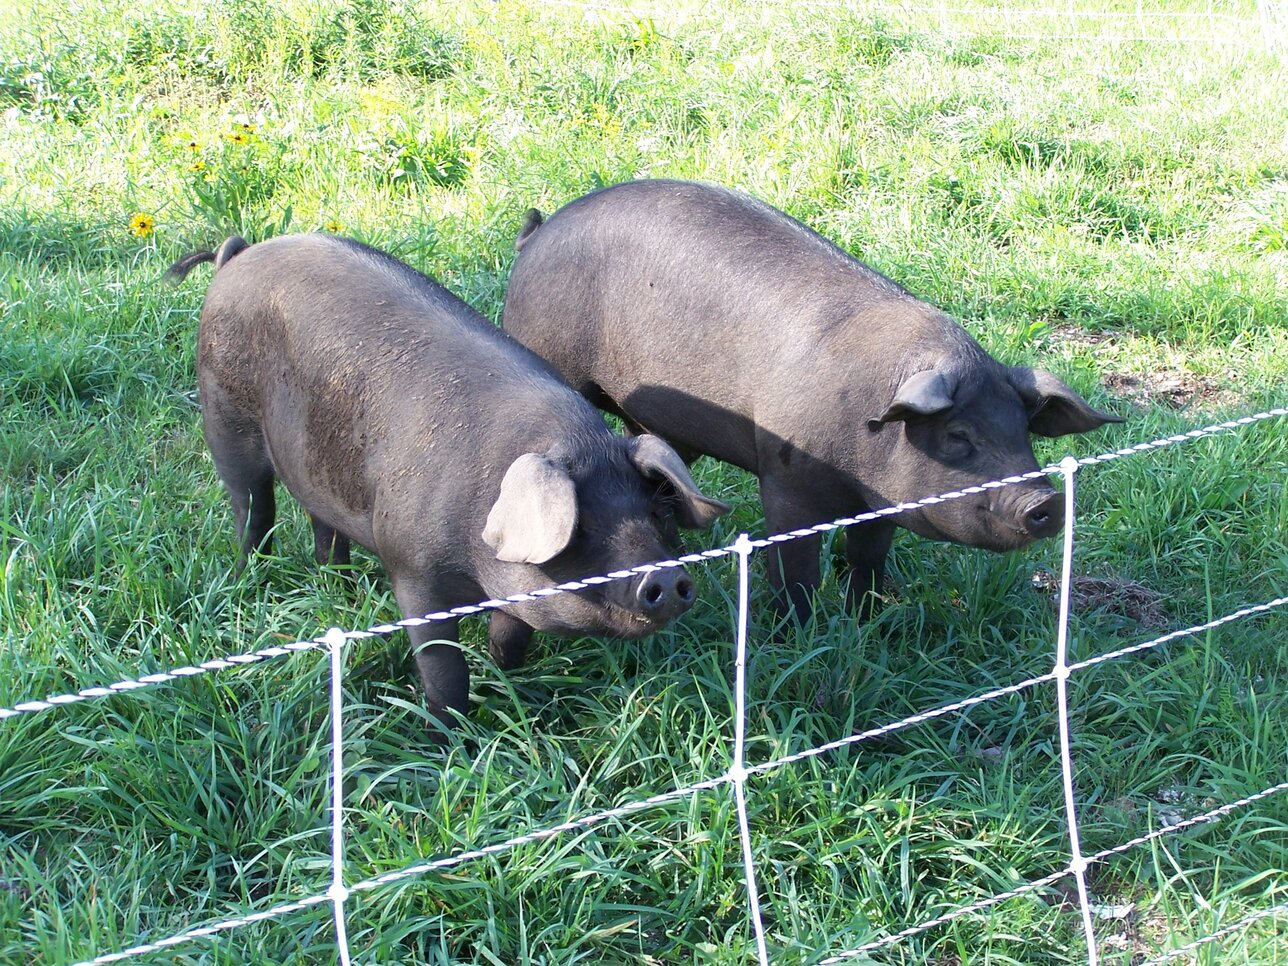 Pigs on Pasture, Soil Fertility, and More